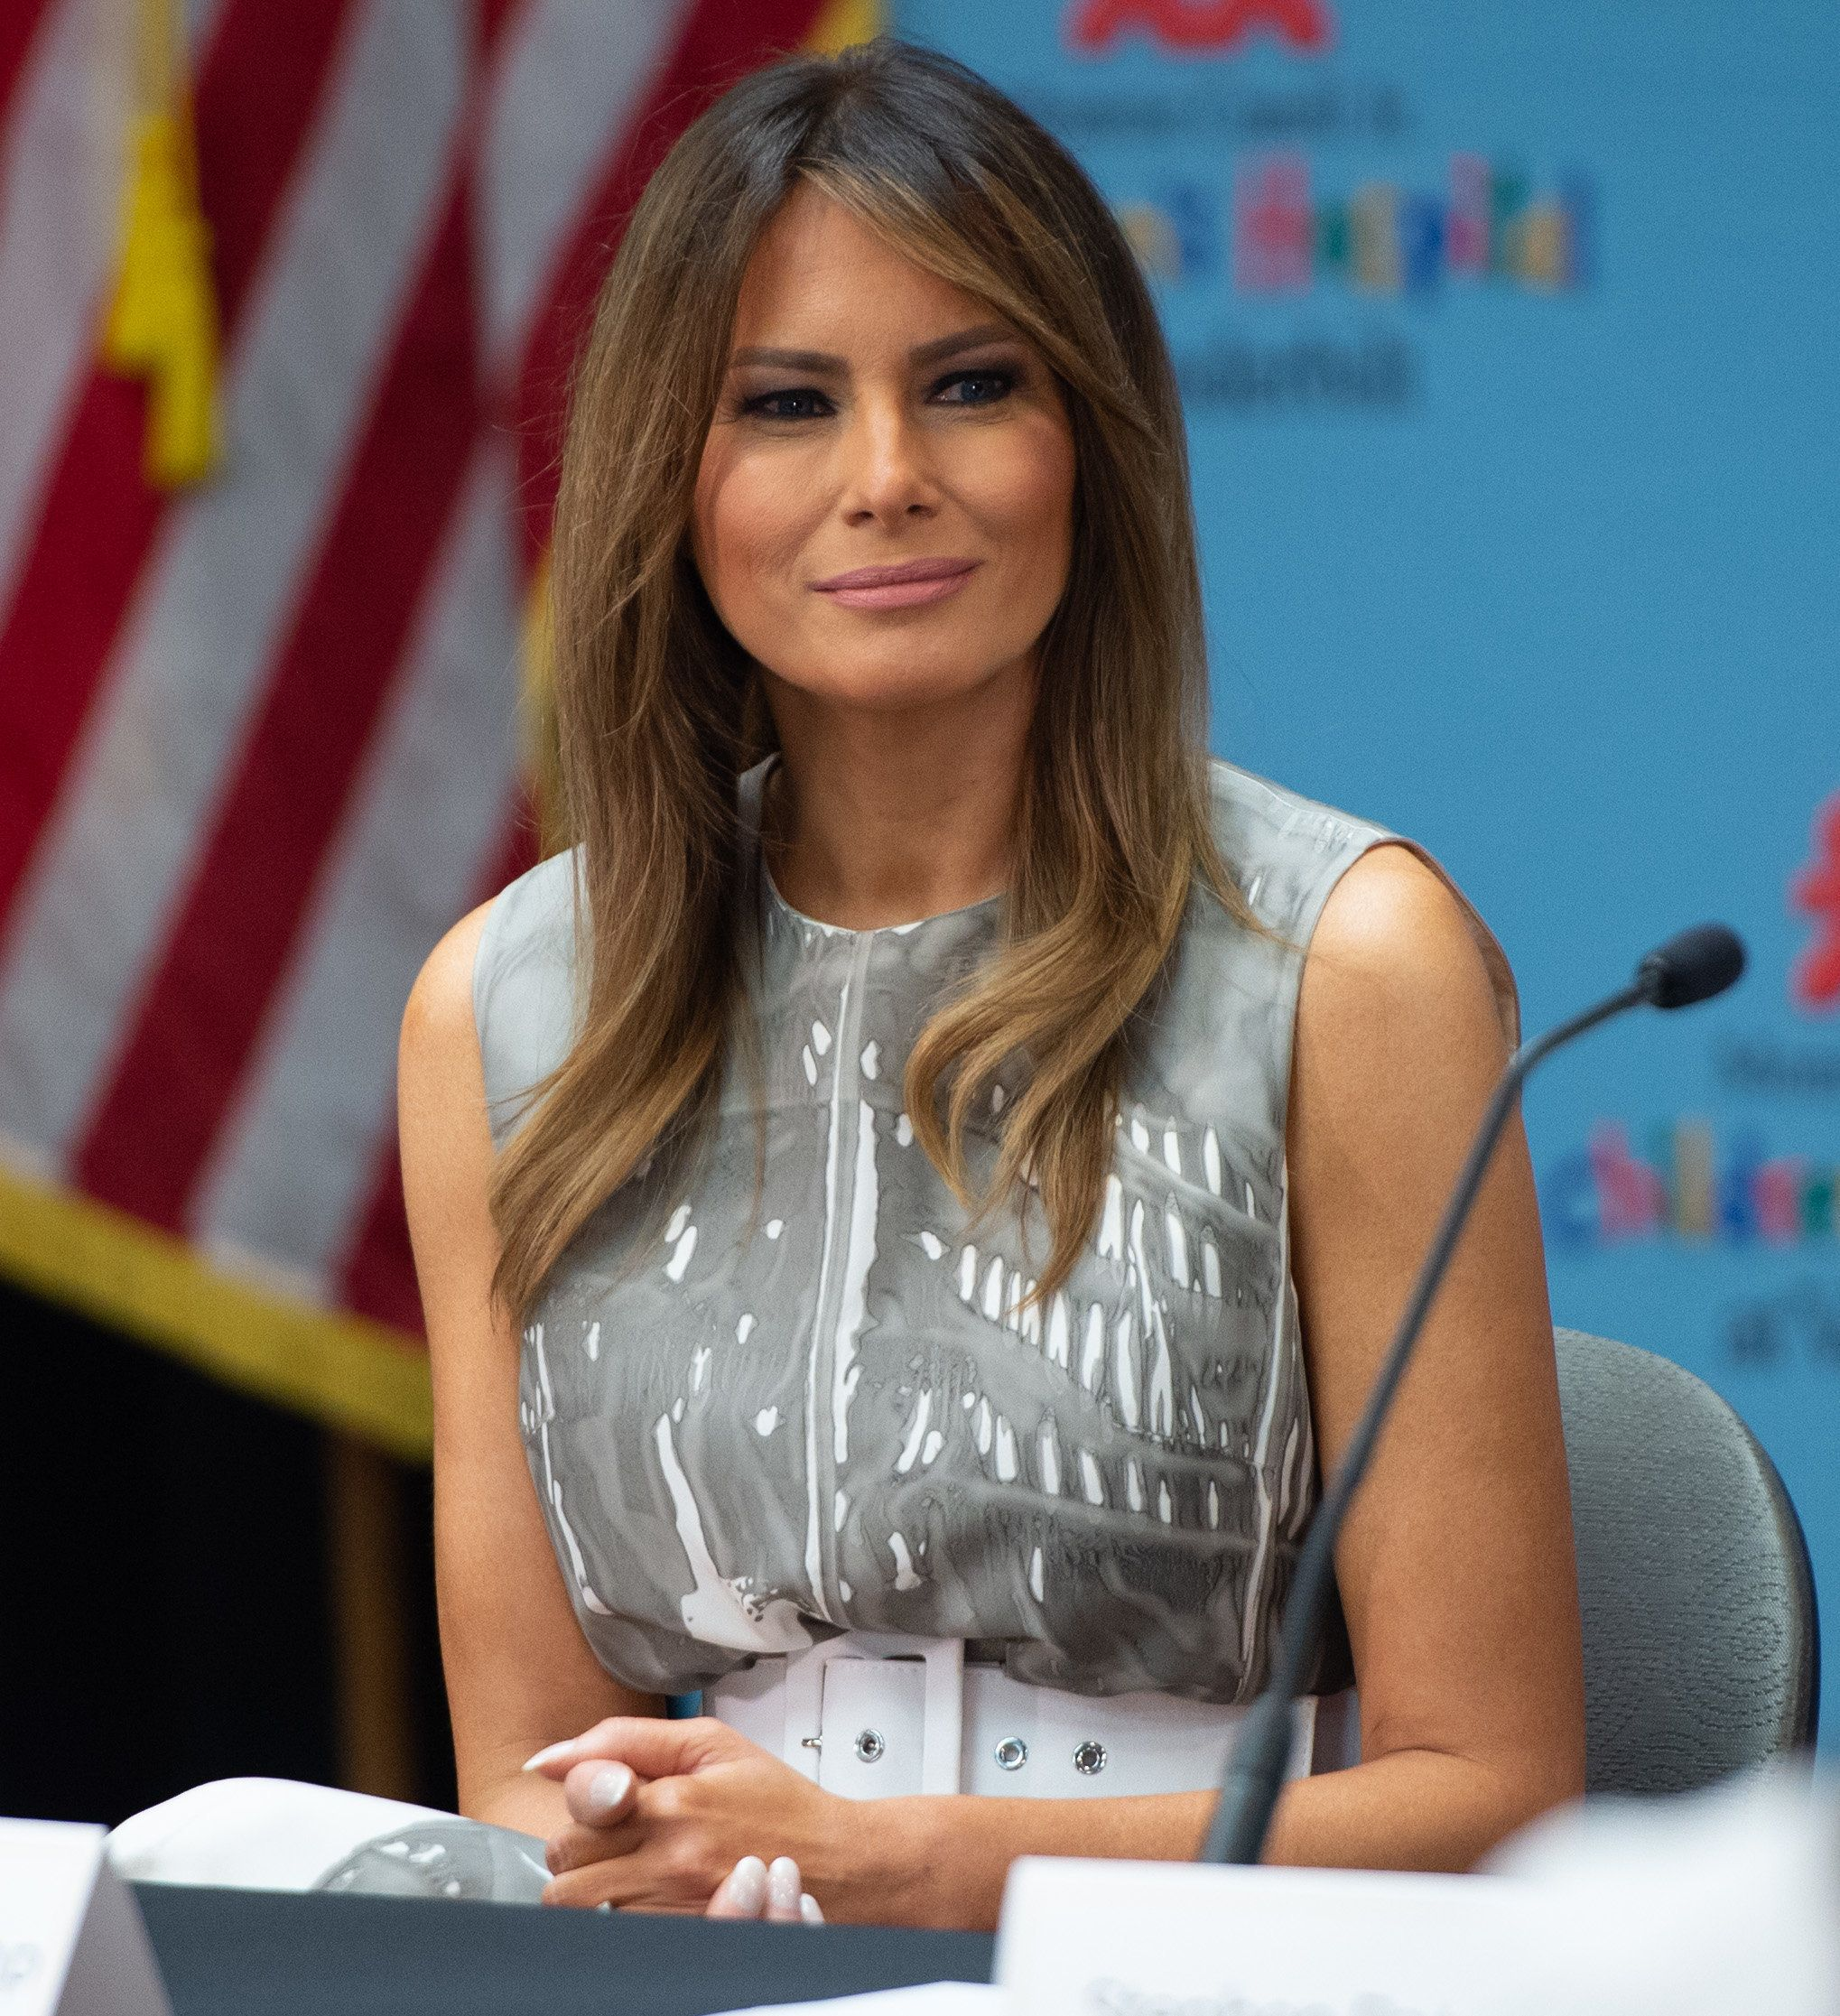 US First Lady Melania Trump holds a roundtable discussion on neonatal abstinence syndrome (NAS) during a visit to Monroe Carell Jr. Children's Hospital at Vanderbilt in Nashville, Tennessee, July 24, 2018, as part of her 'Be Best' campaign. (Photo by SAUL LOEB / AFP)        (Photo credit should read SAUL LOEB/AFP/Getty Images)